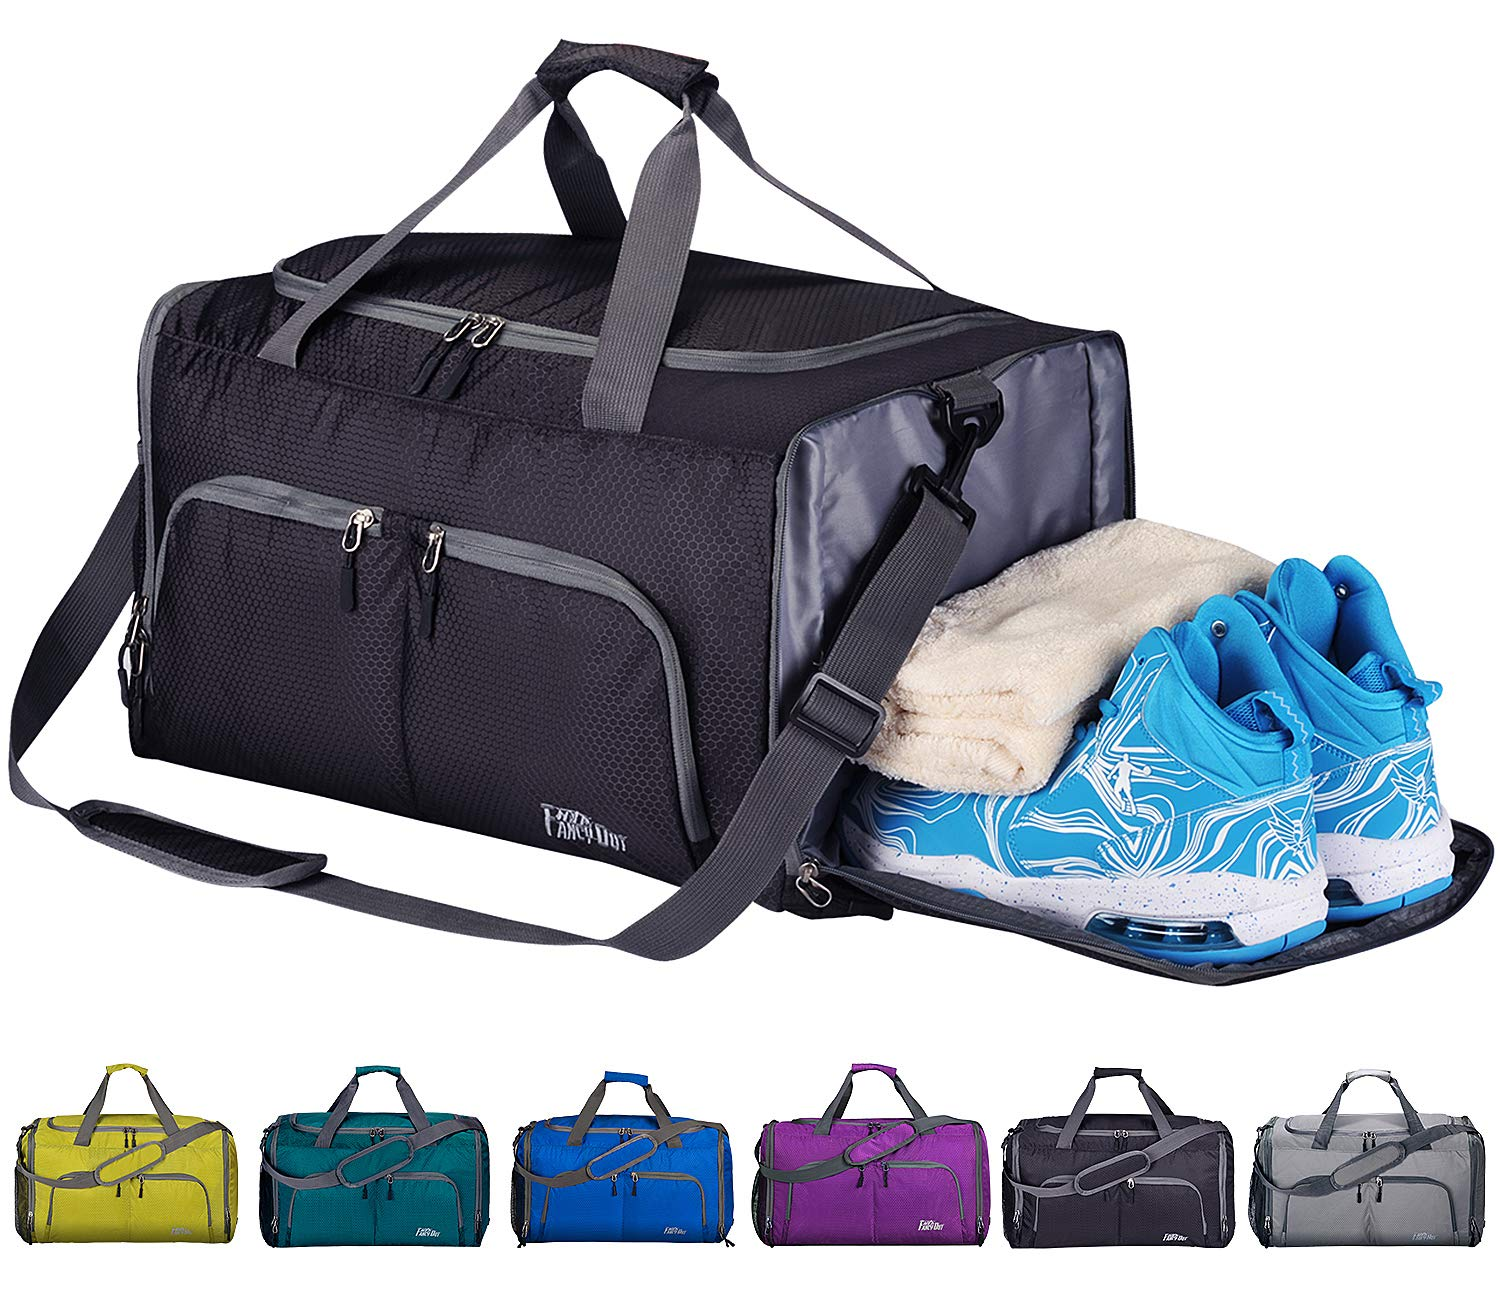 5967b49a85a7 CoCoMall Foldable Sports Gym Bag with Shoes Compartment   Wet Pocket ...